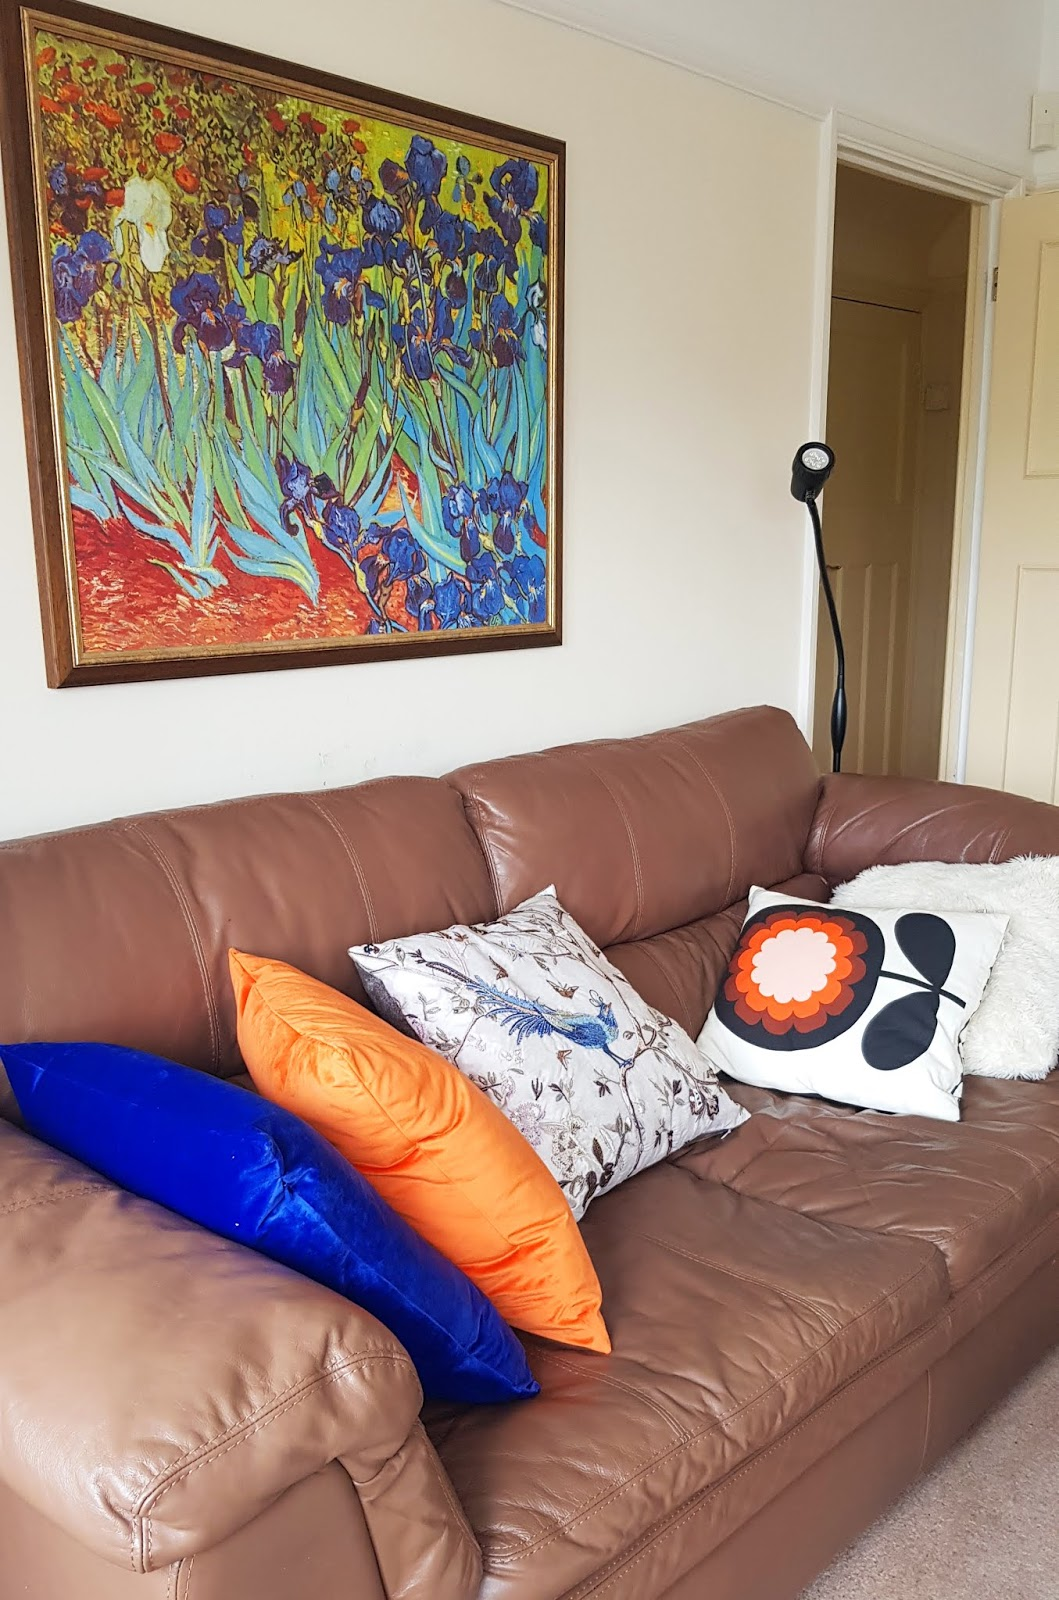 Van Gogh Irises painting with cushions picking out the blue and orange tones